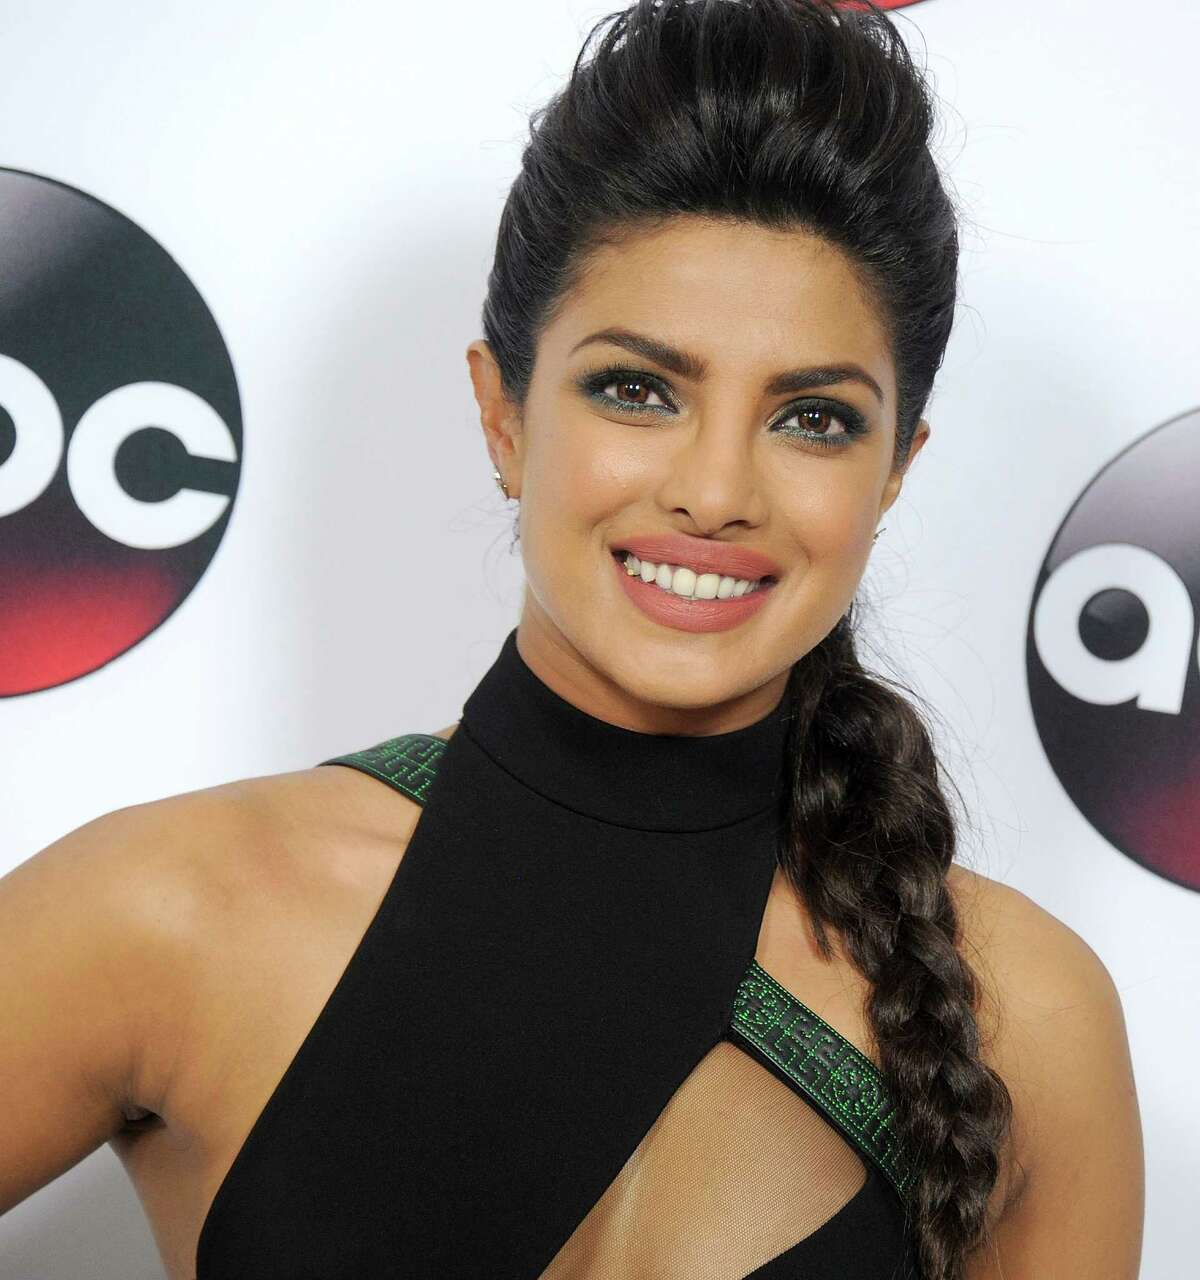 Priyanka Chopra Born in Jamshedpur, Jharkhand, Chopra was the winner of Miss World in 2000. She's gone on to become one of Bollywood's highest-paid actresses.